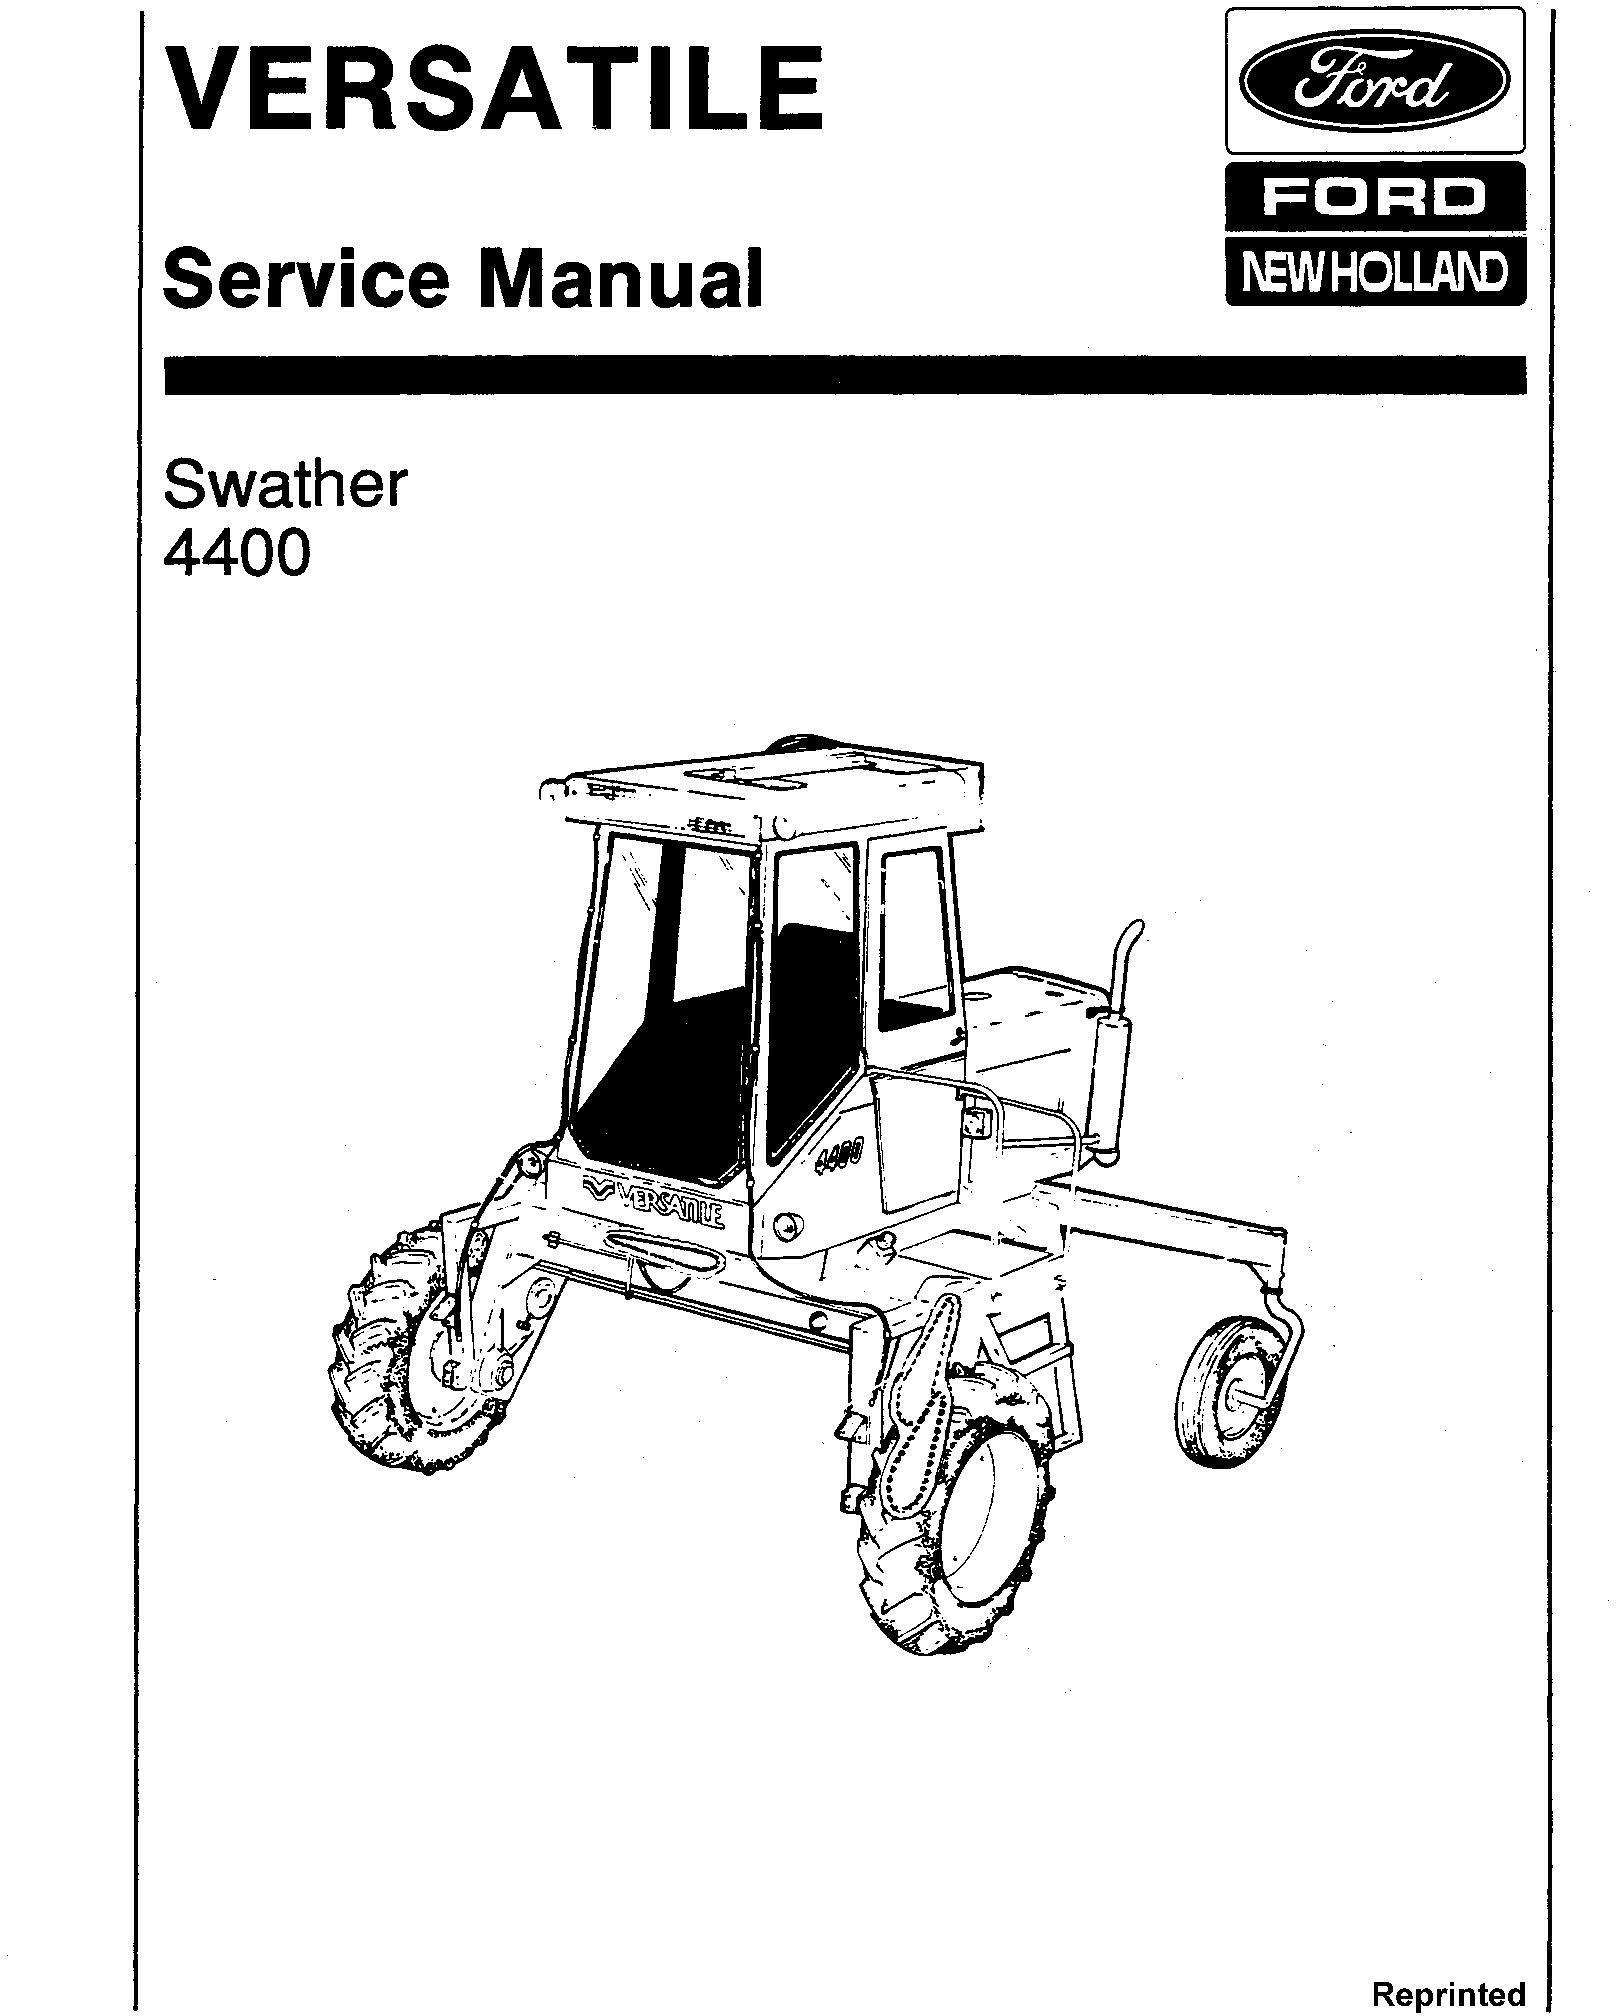 Ford Versatile Swather Gas Ampsel Service Manual